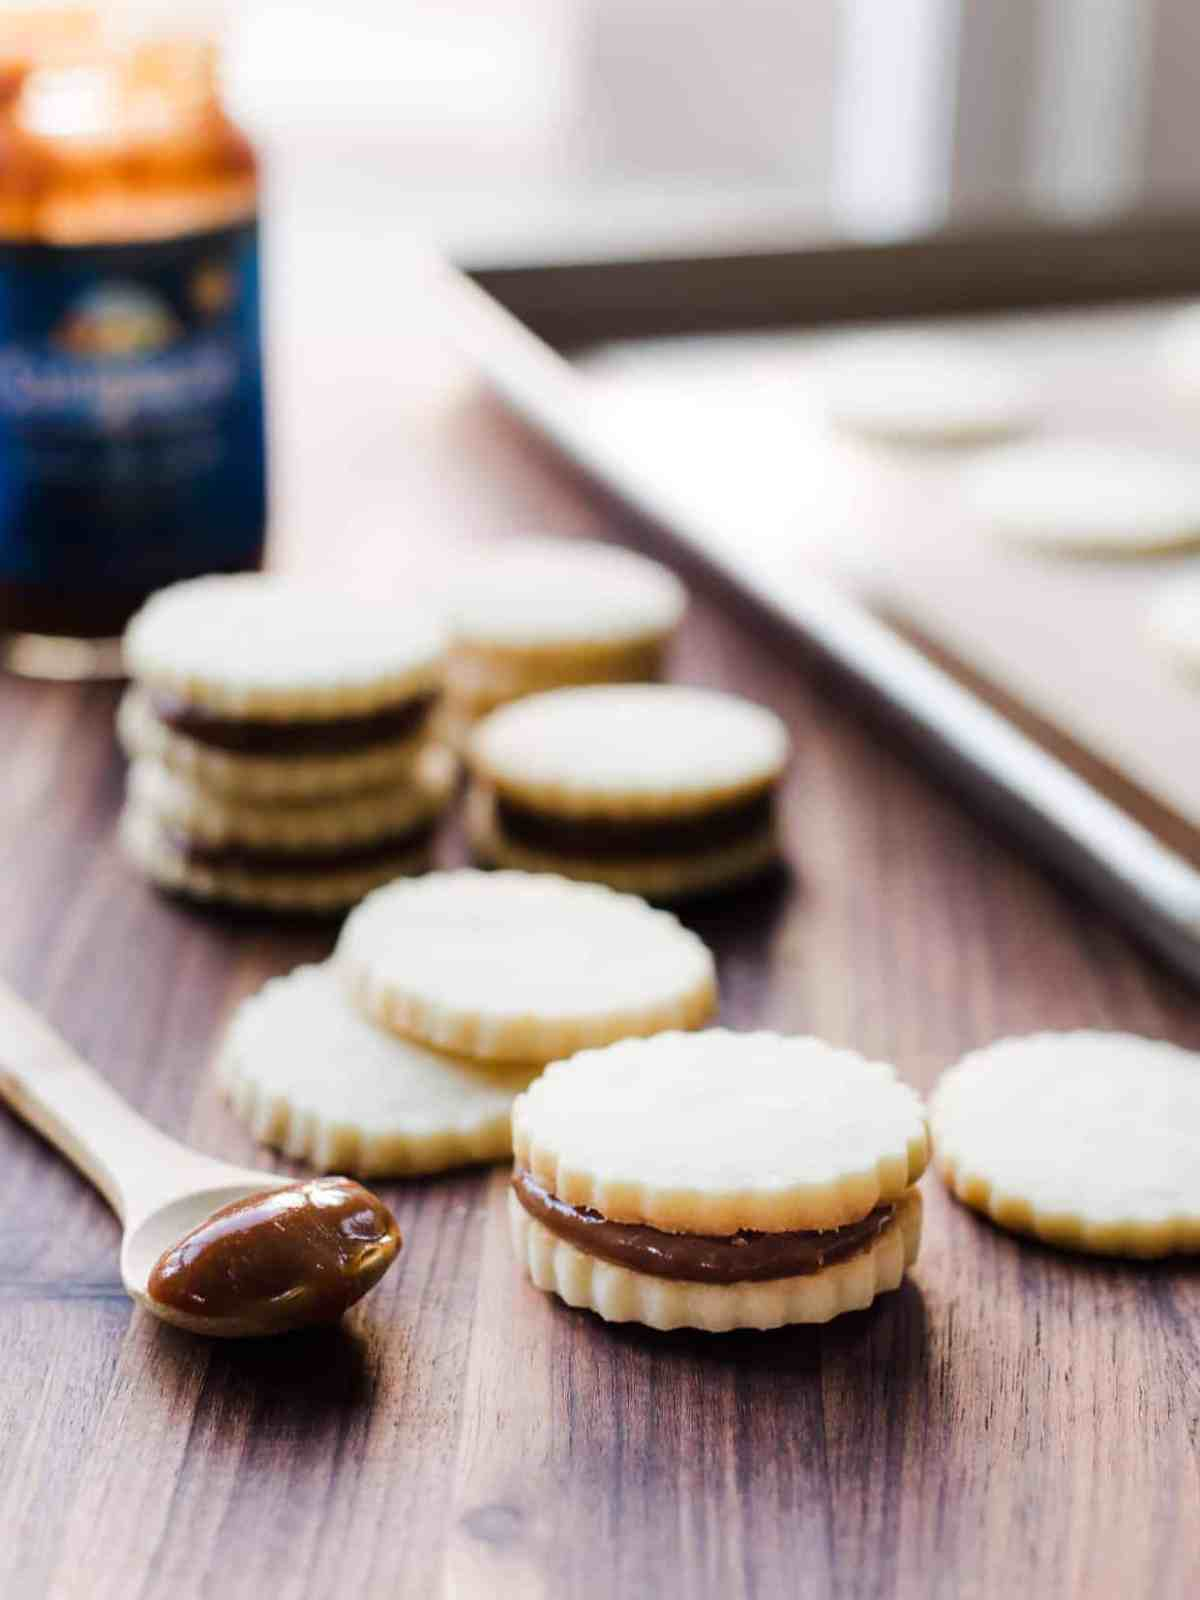 Spoon filled with dulce de leche surrounded by Alfajores cookies.